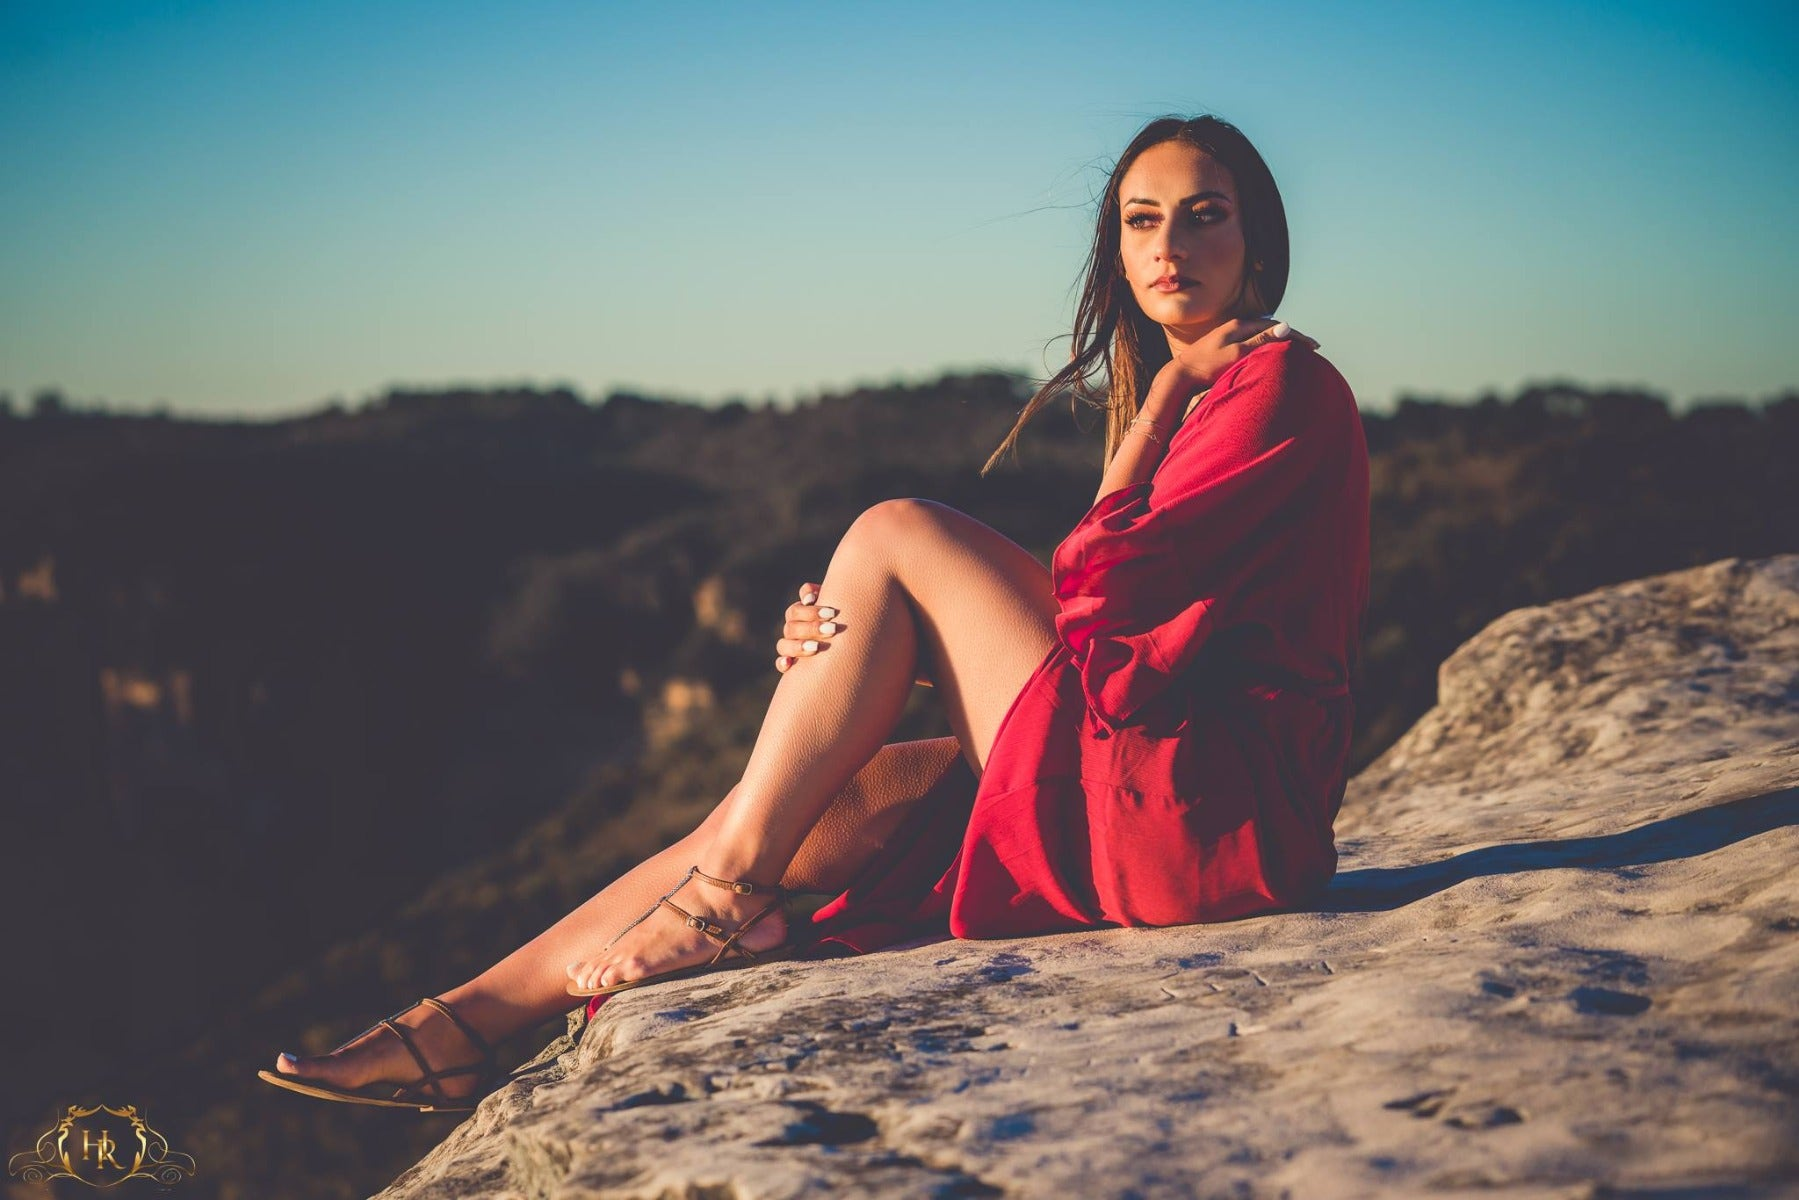 Environmental portrait in nature with red dress